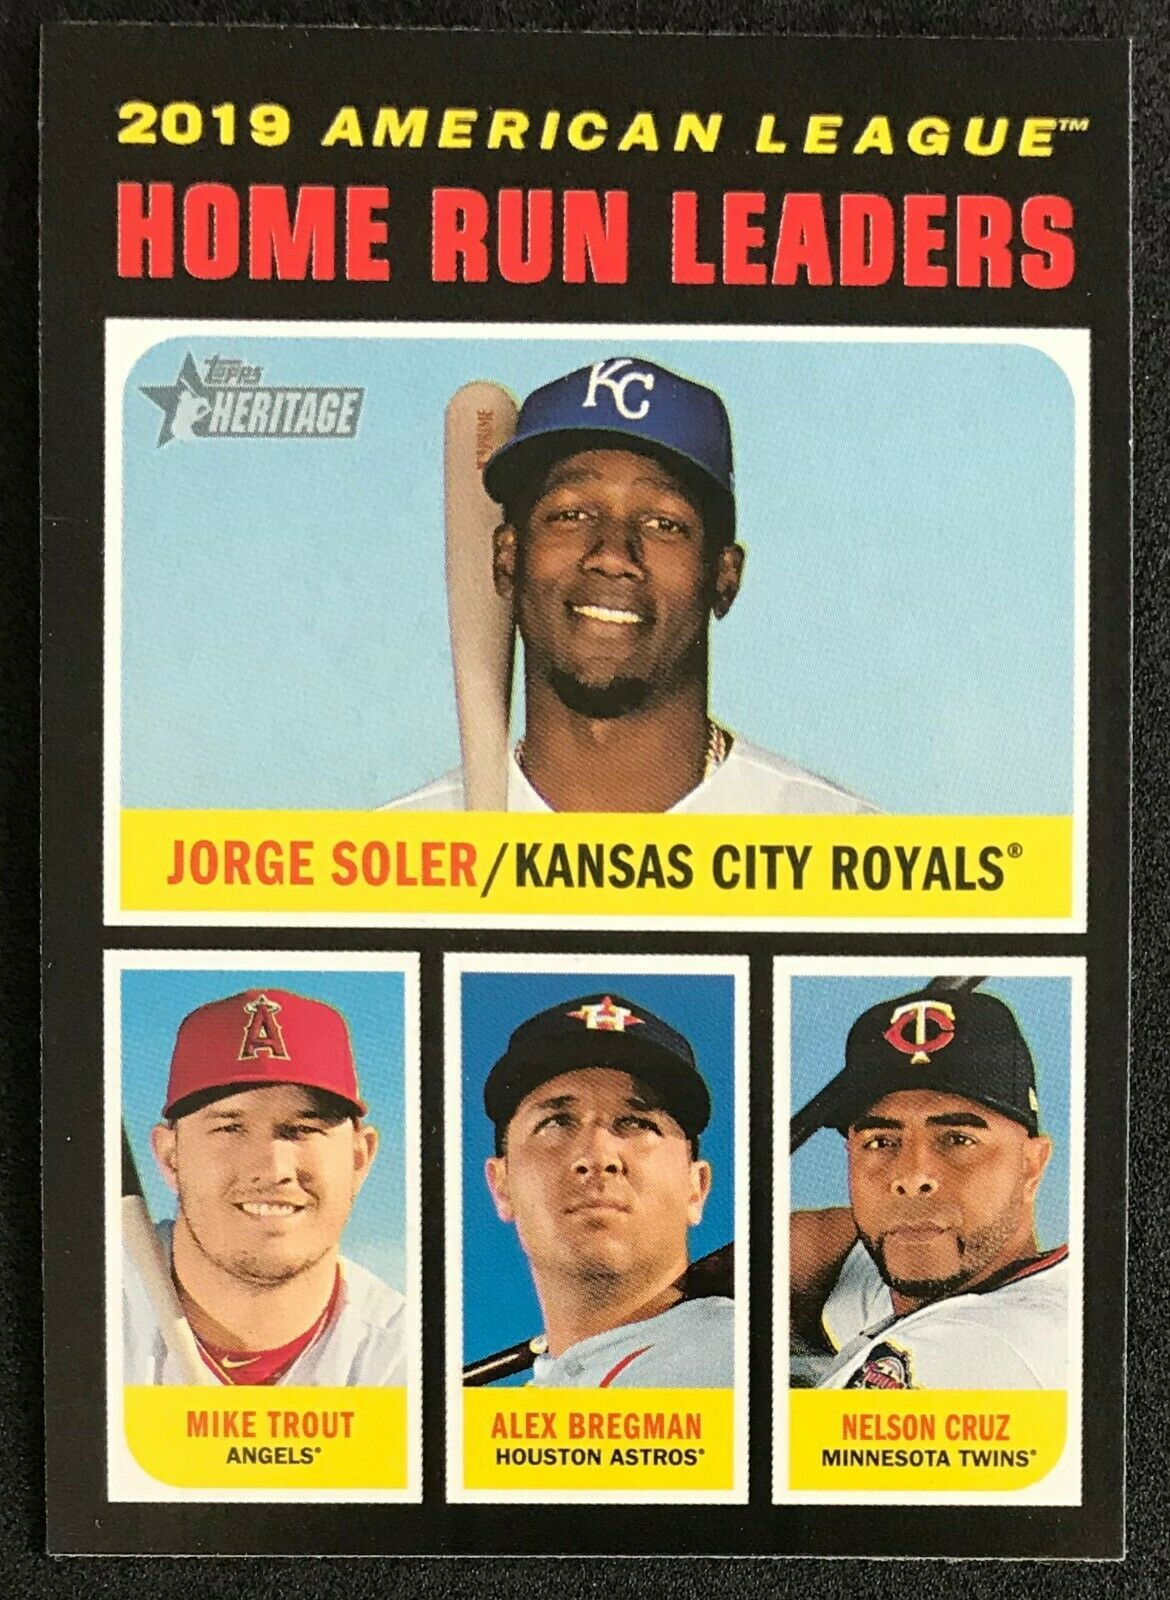 2020 Topps Heritage Al Home Run Leaders French Ssp Variation Mike Trout 65 In 2020 Mike Trout Homerun Trout